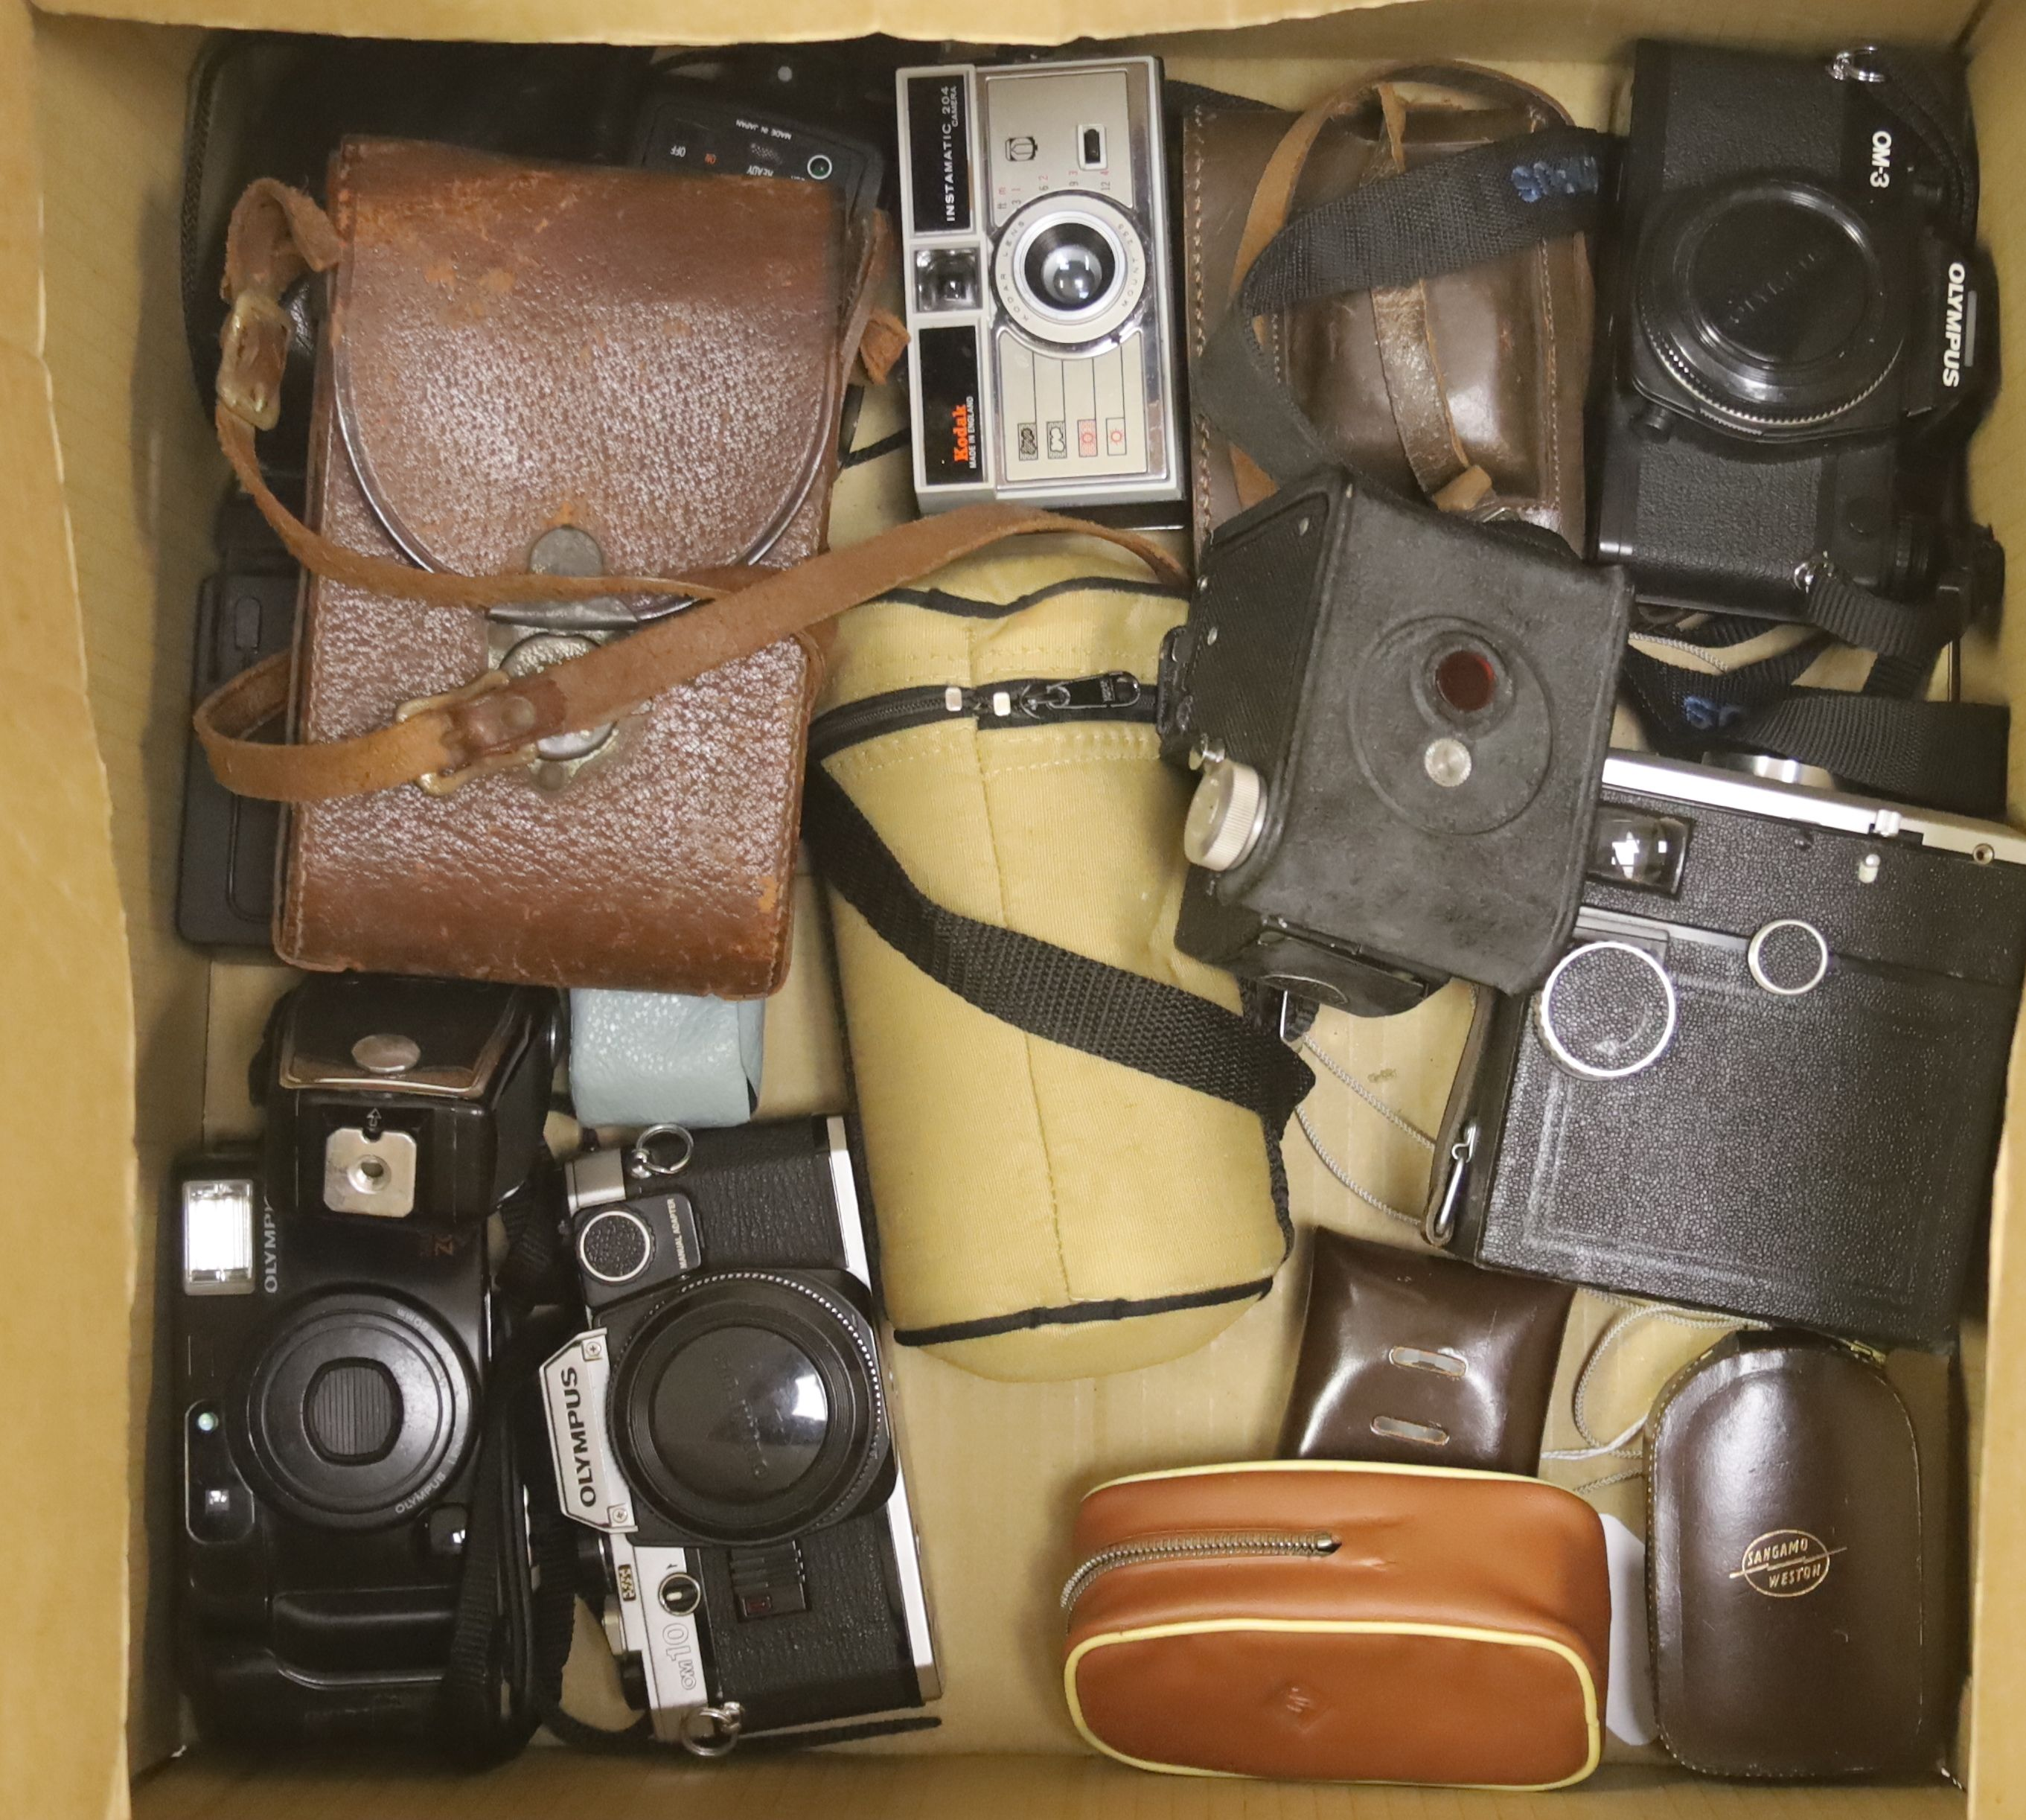 A quantity of cameras and lenses including Olympus